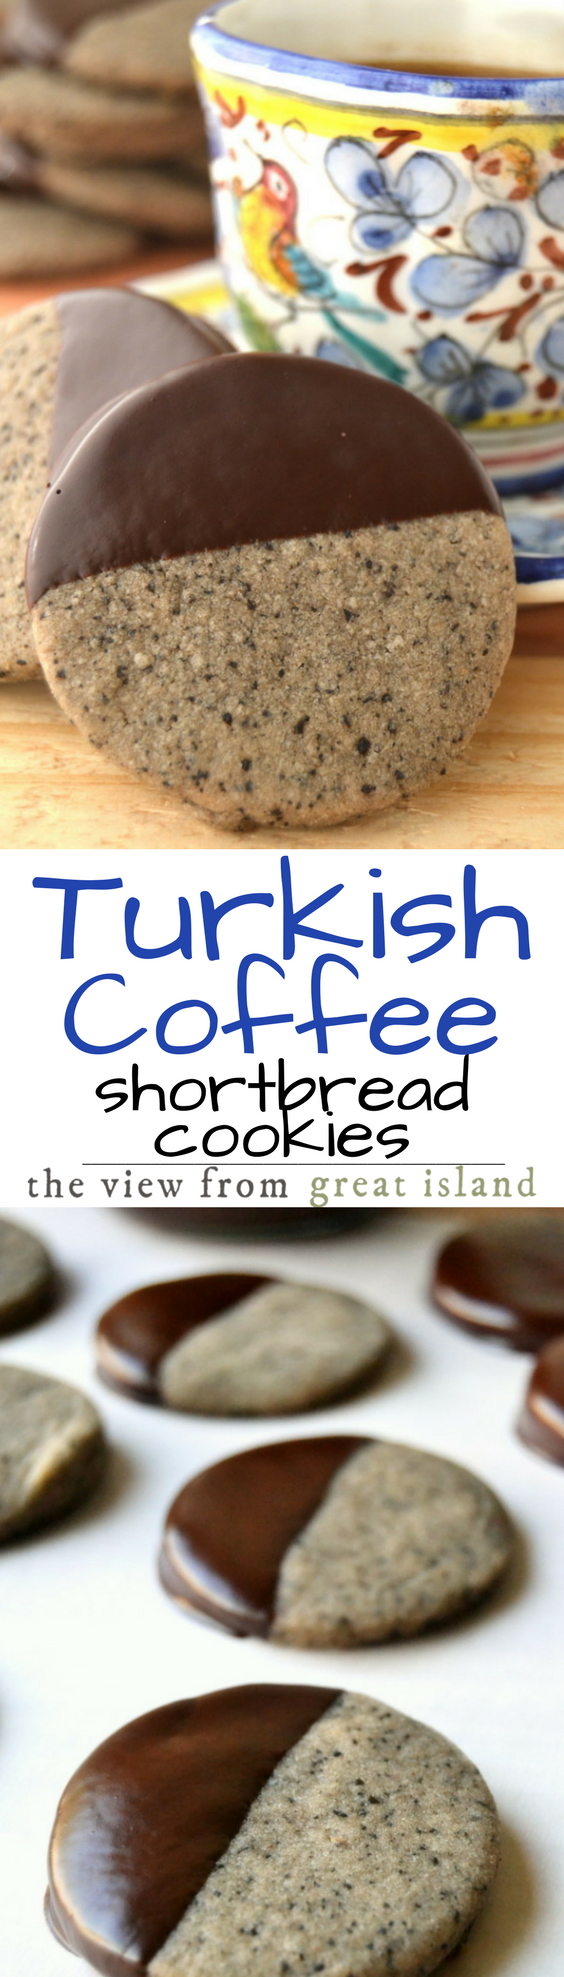 Turkish Coffee Shortbread Cookies pin